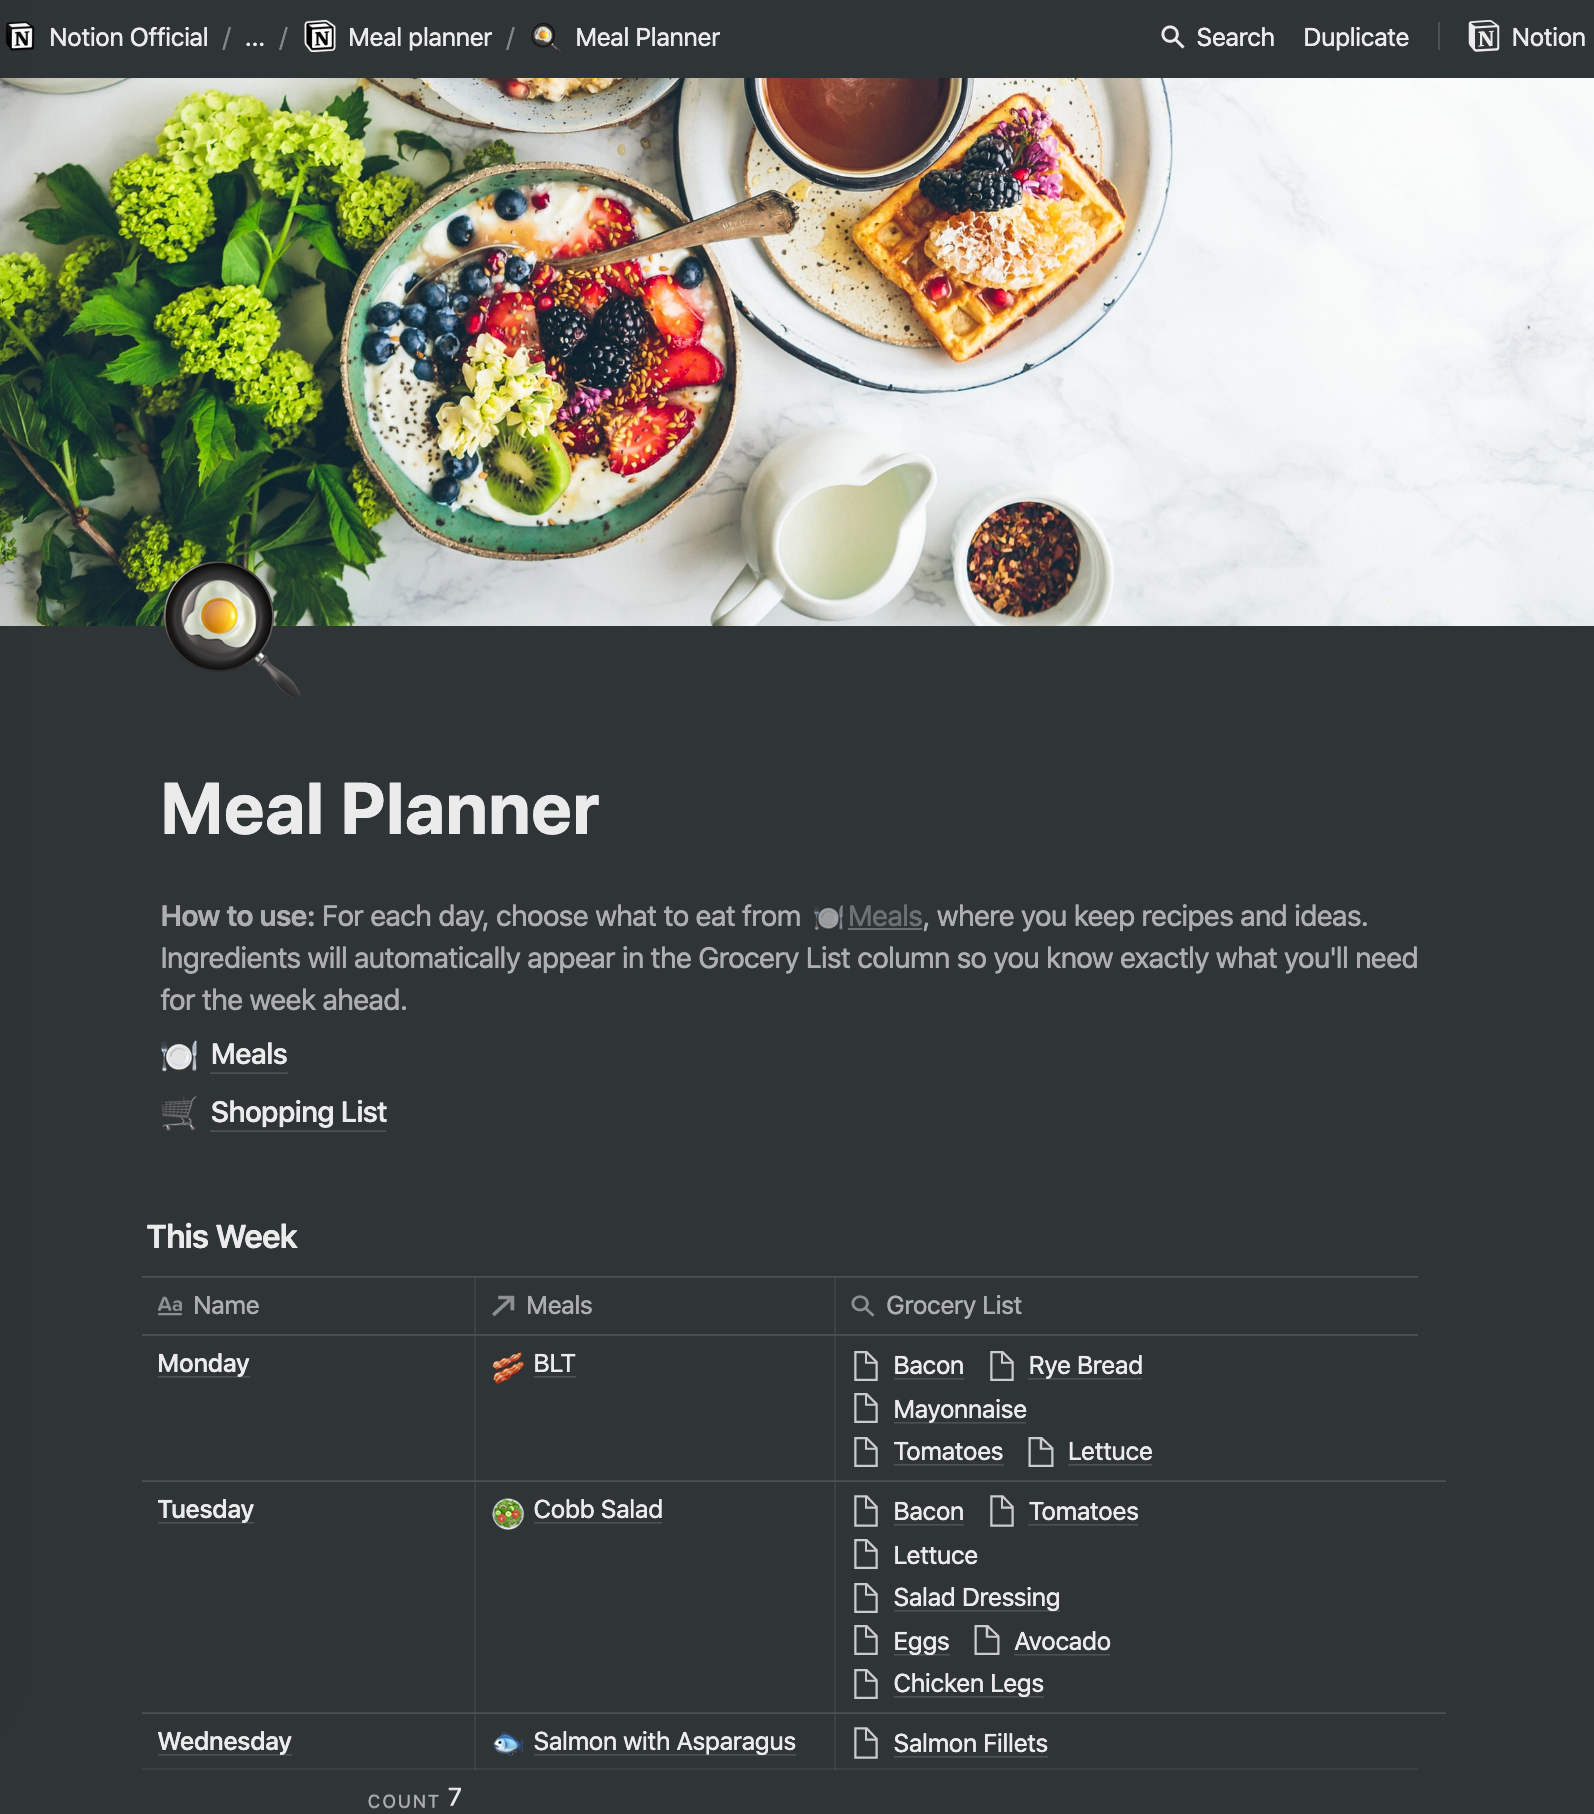 notion_for_personal_meal_planner